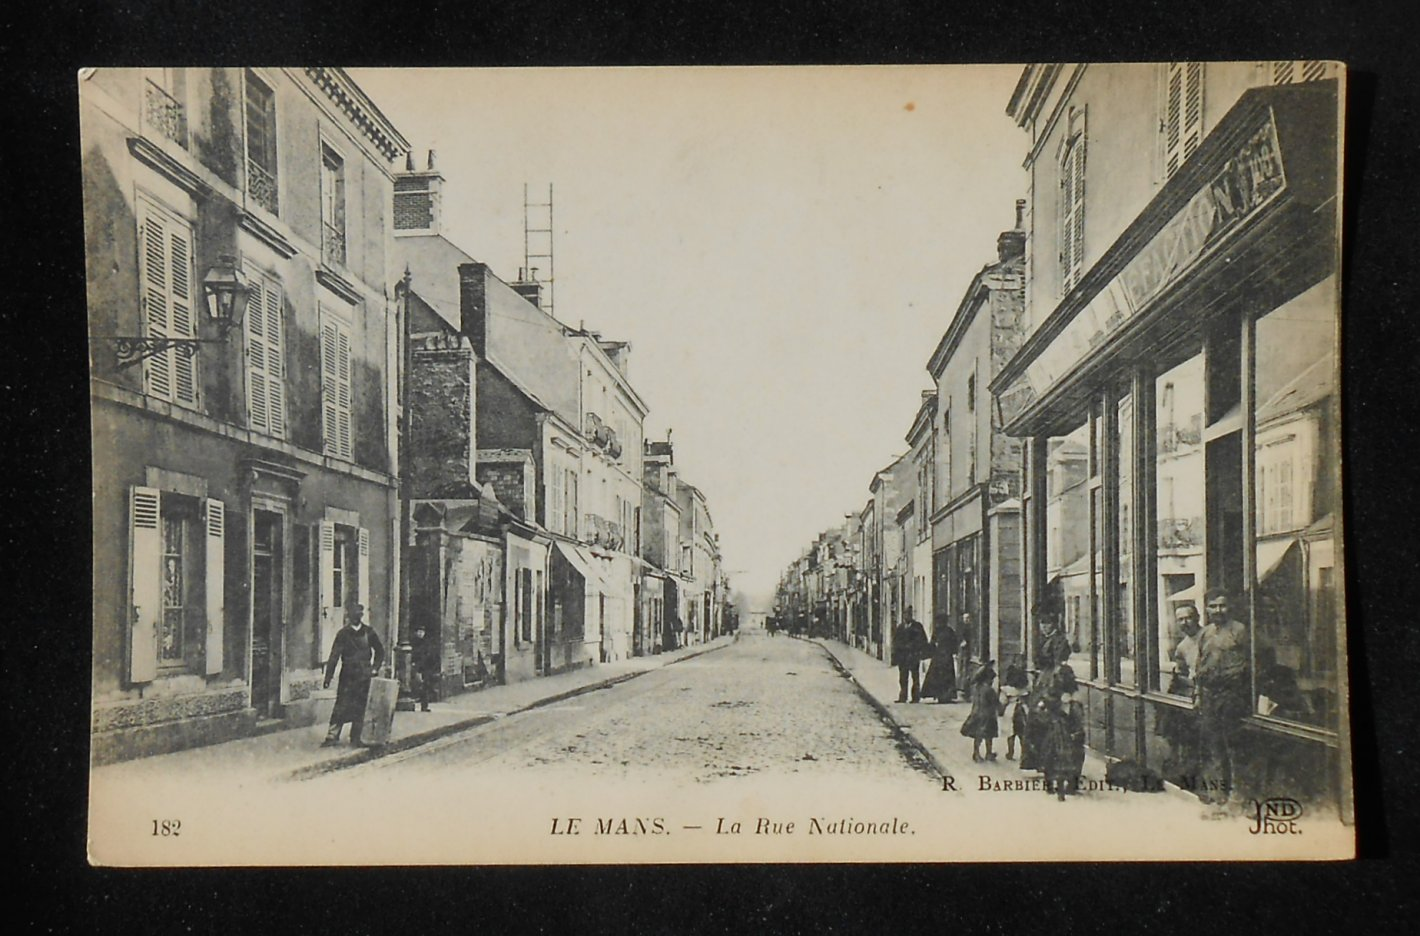 1910s la rue nationale old shops stores le mans france sarthe co postcard ebay. Black Bedroom Furniture Sets. Home Design Ideas